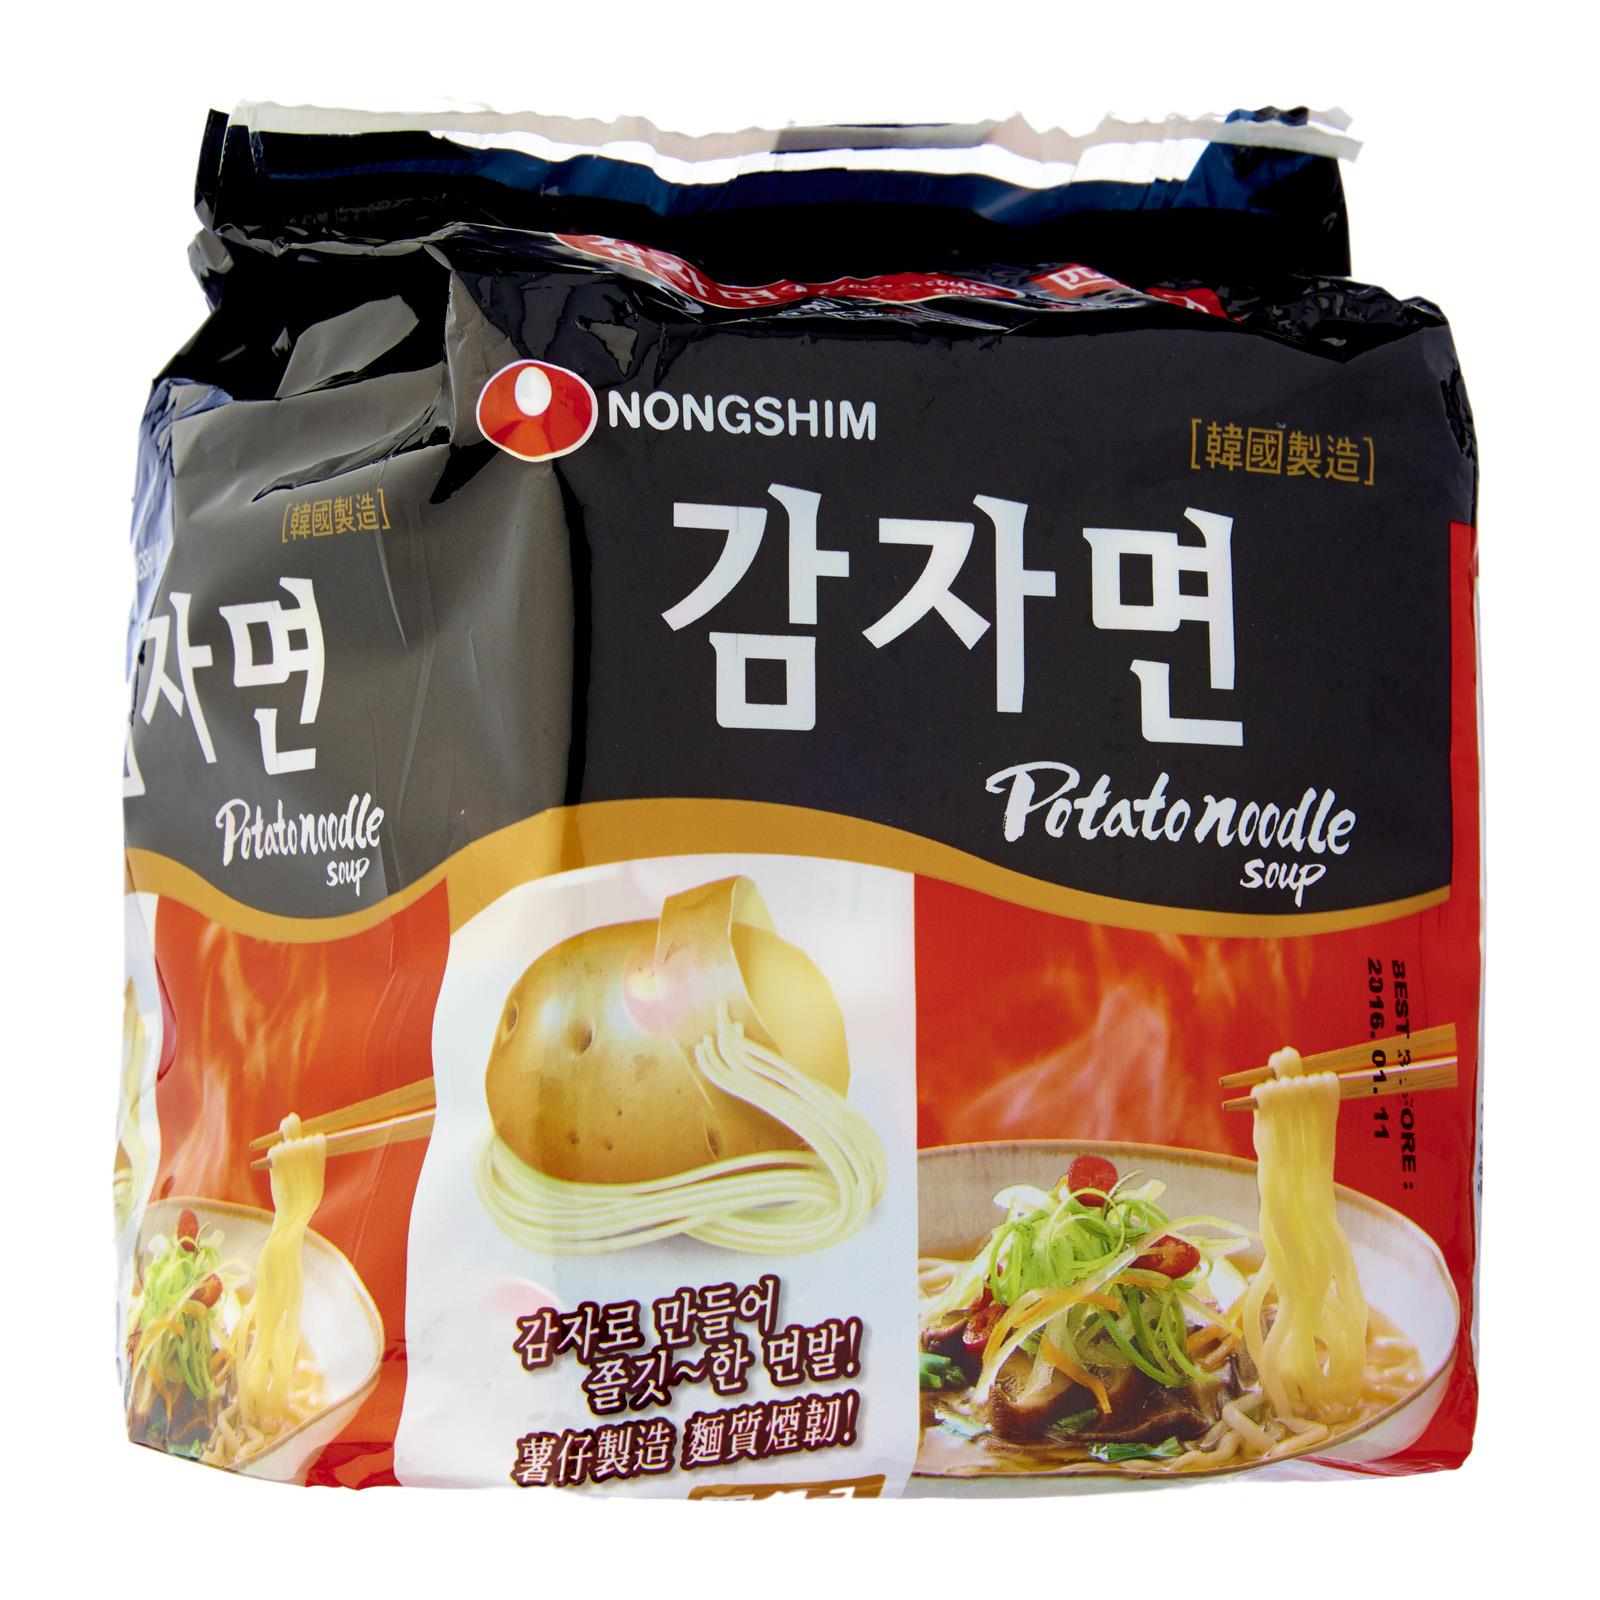 how to make nongshim noodles